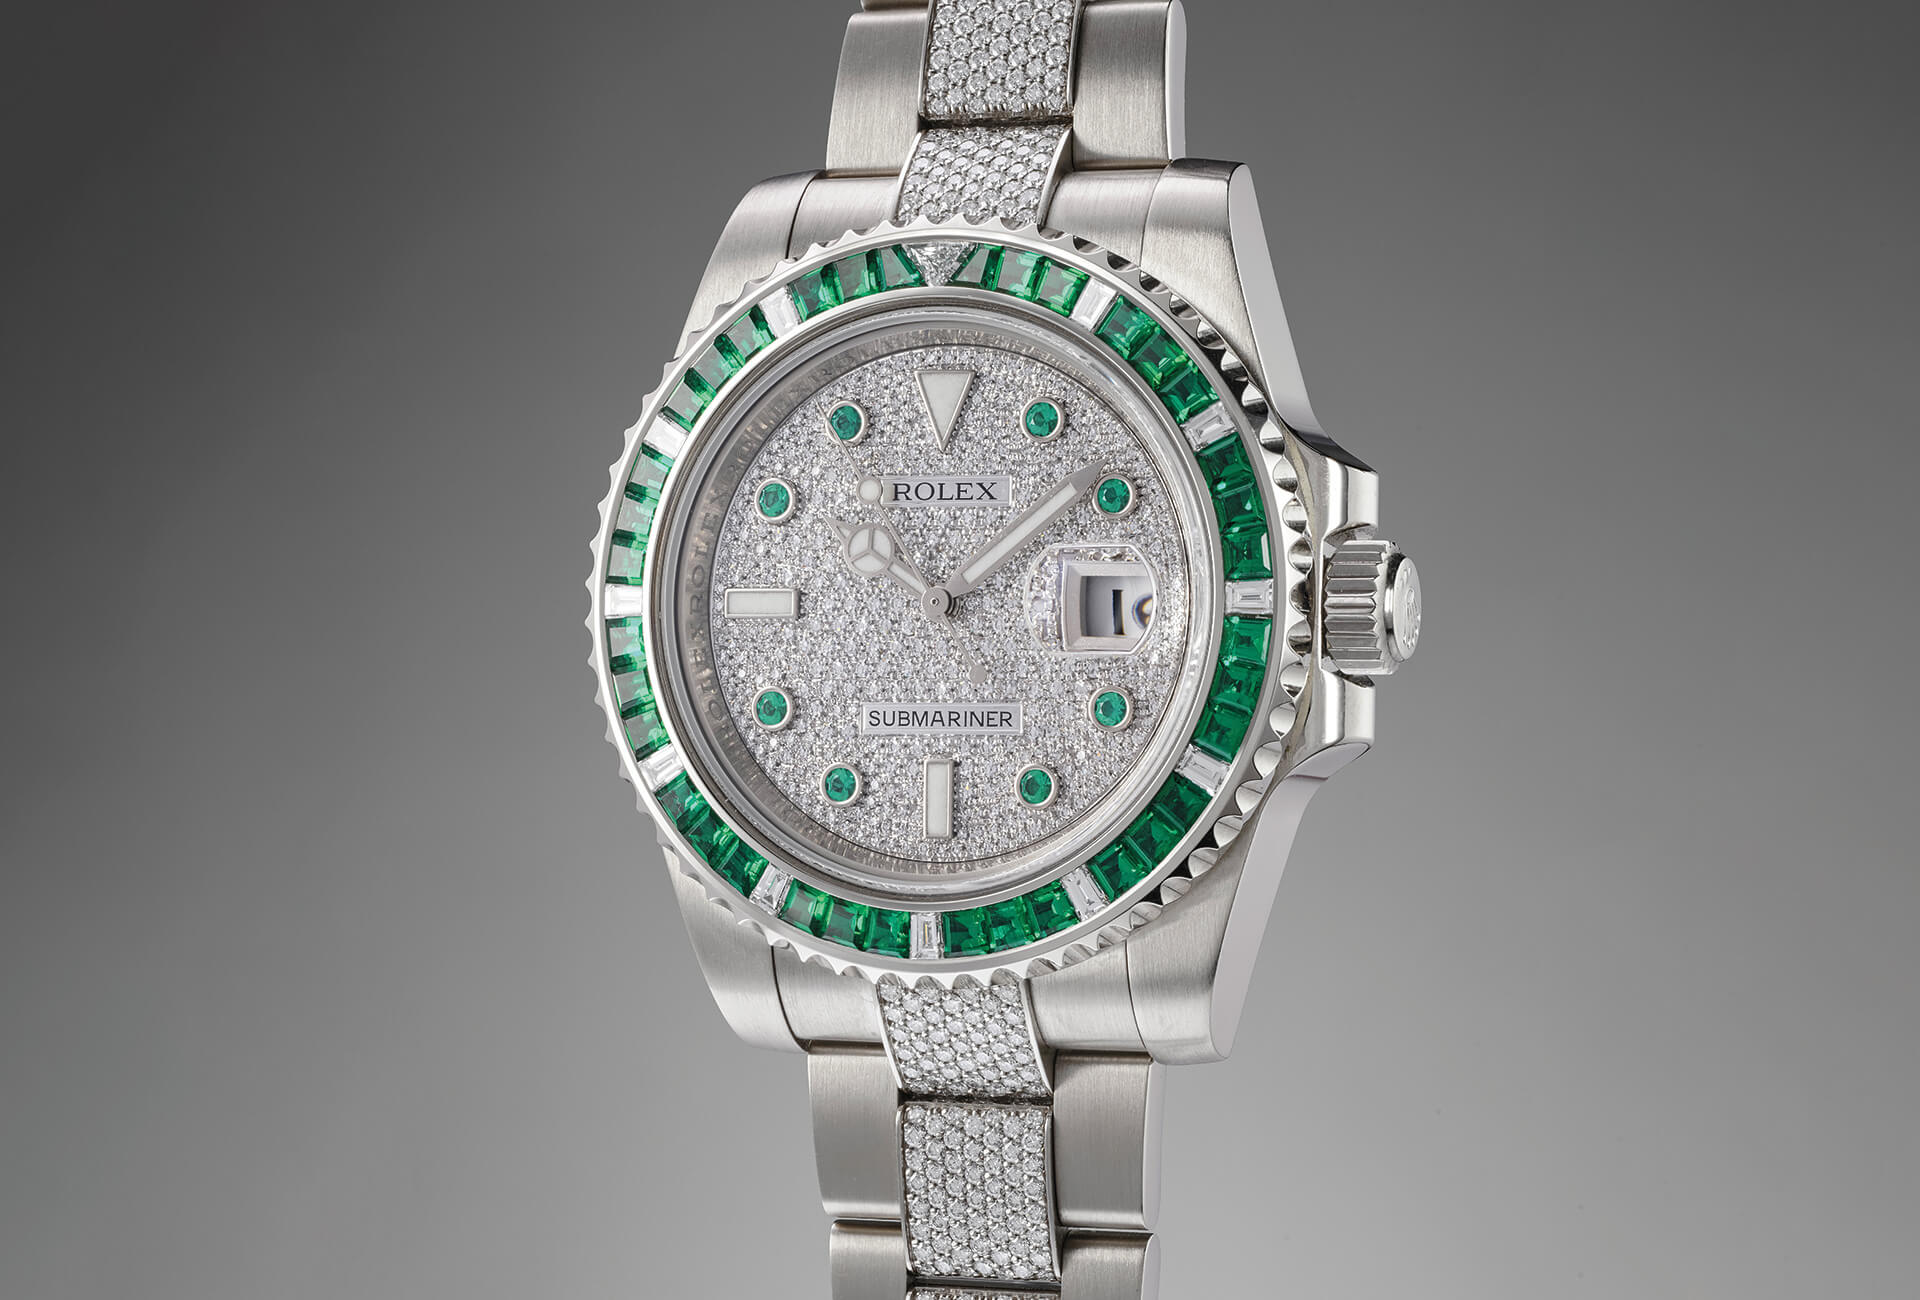 Rolex Submariner Is The World S Most Recognizable Timepiece Ready